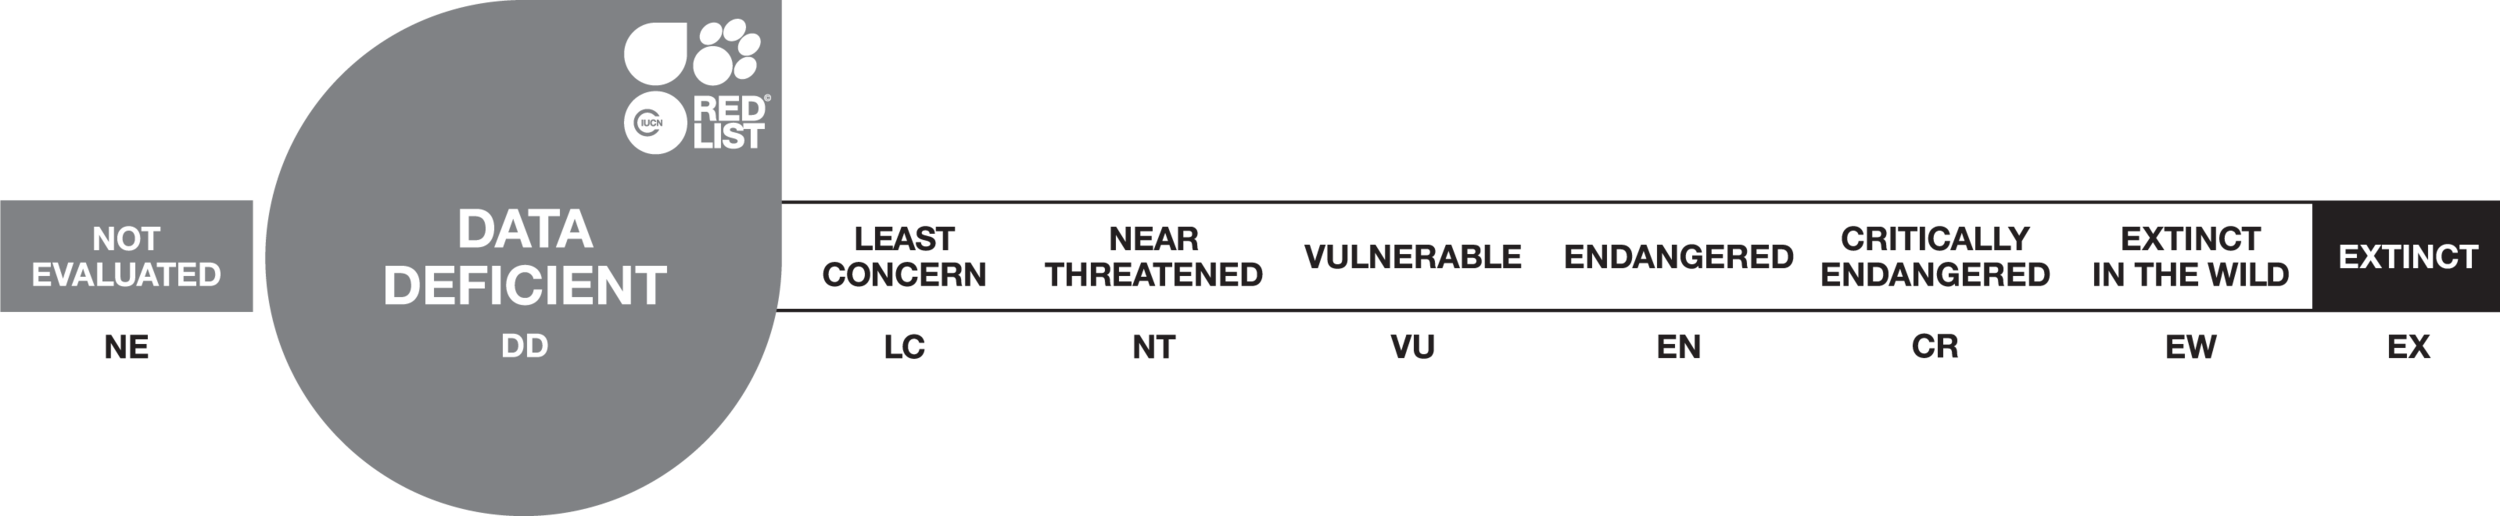 Threat Categories LONG_DD.png